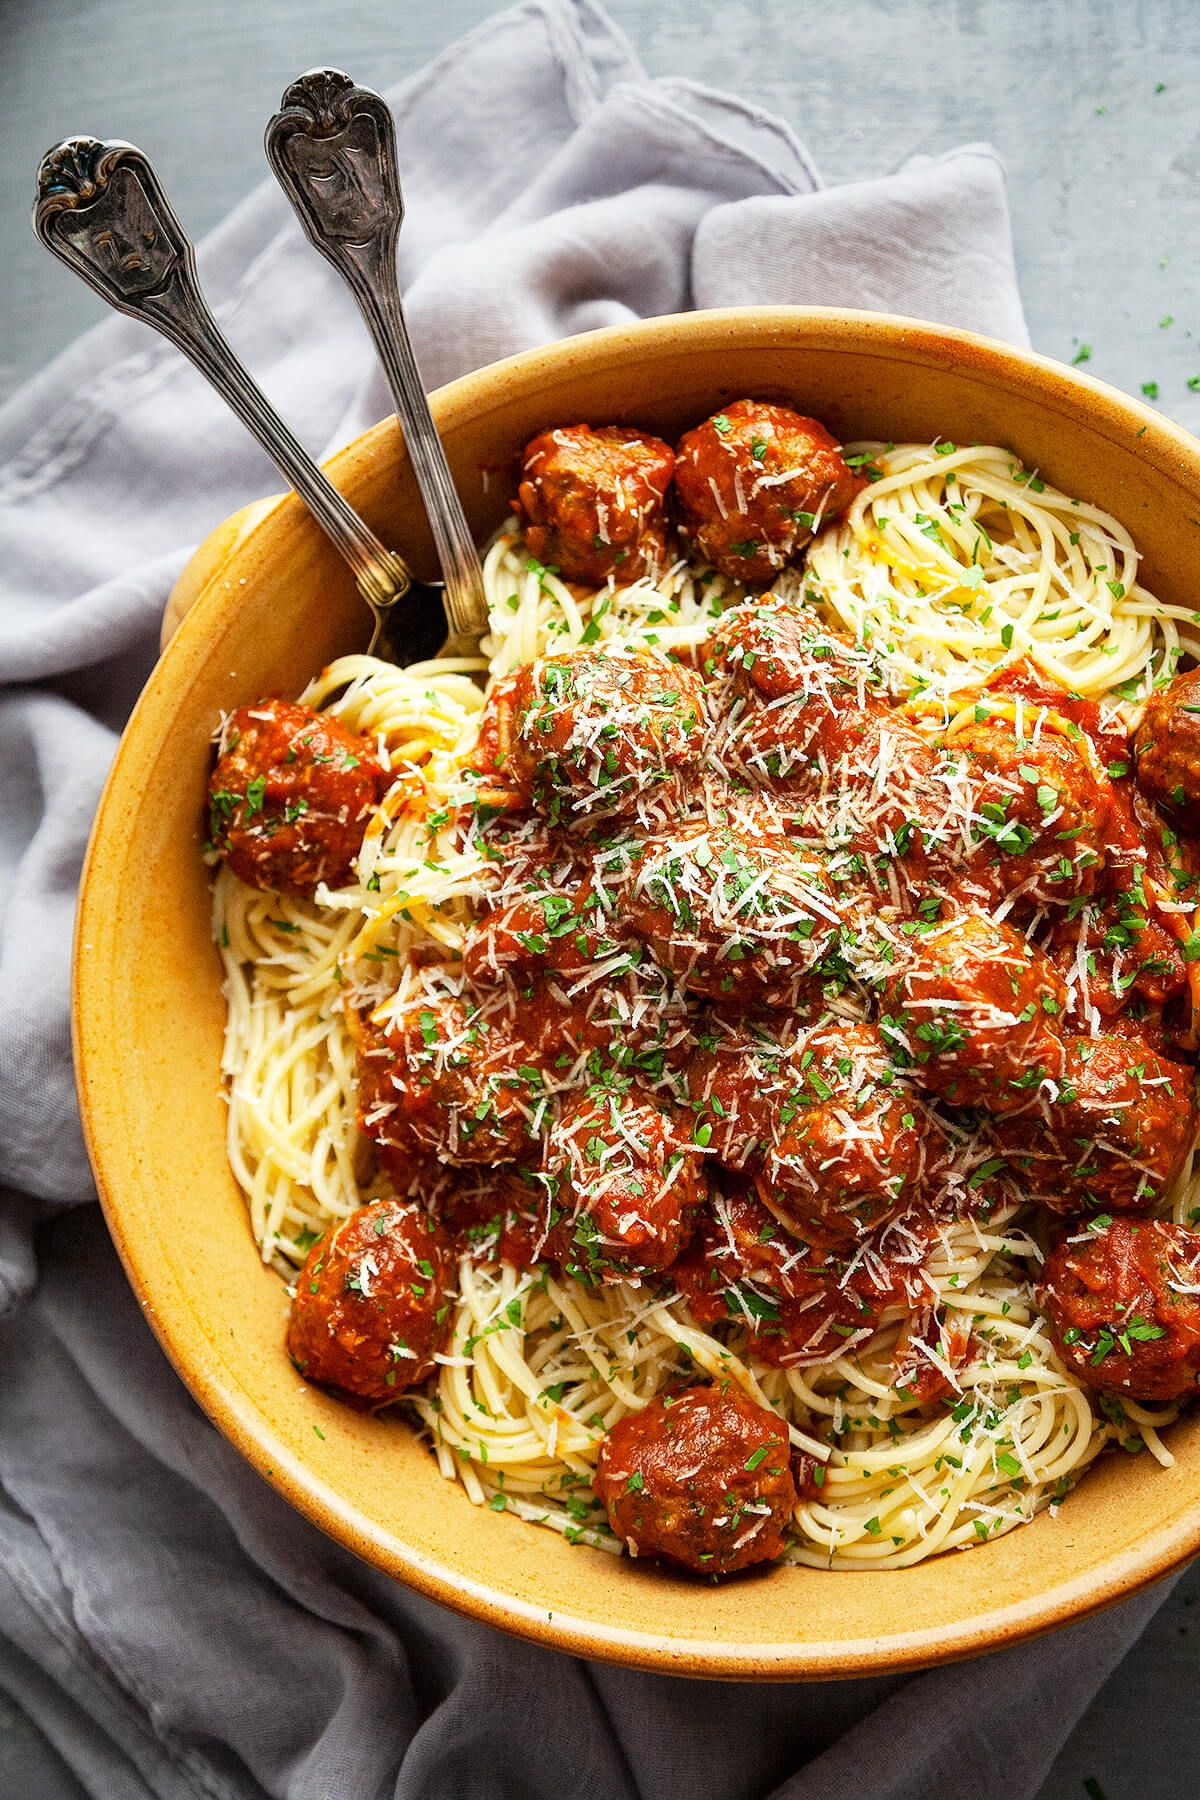 Seriously the best Spaghetti and Meatballs recipe I have ever tried. Sharing my secrets to the most juicy, tender Italian meatballs, simmered in a homemade marinara sauce. #easy #spaghettiandmeatballs #italian #pasta #best #homemade #recipe #beef #dinner #classic